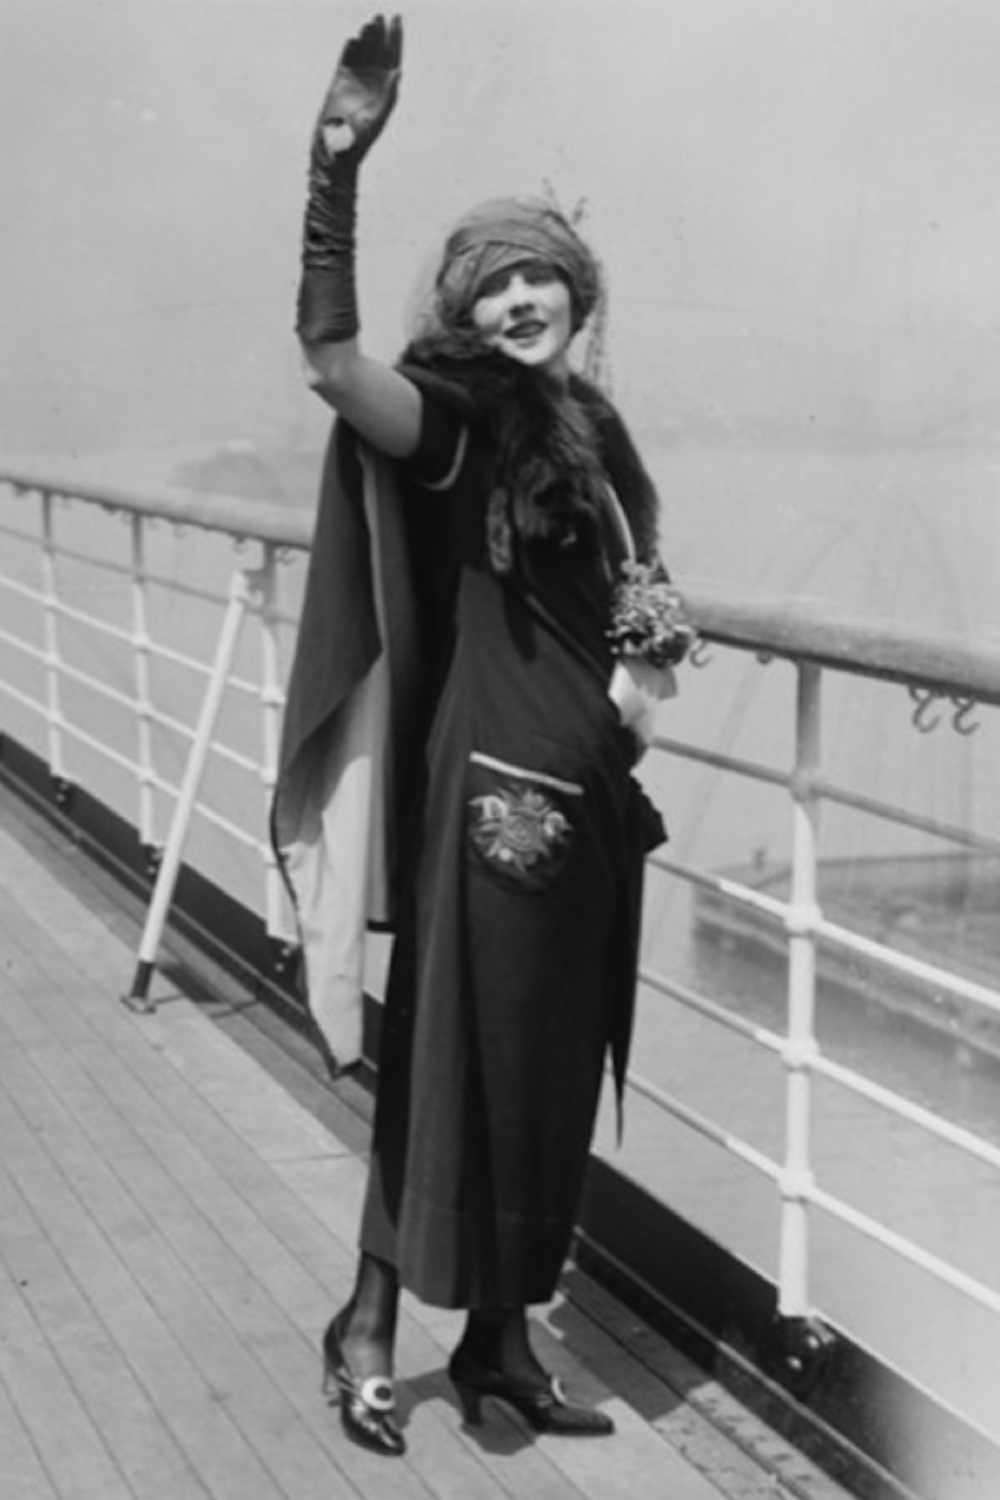 Old Timey photo of a woman standing on a bridge waving